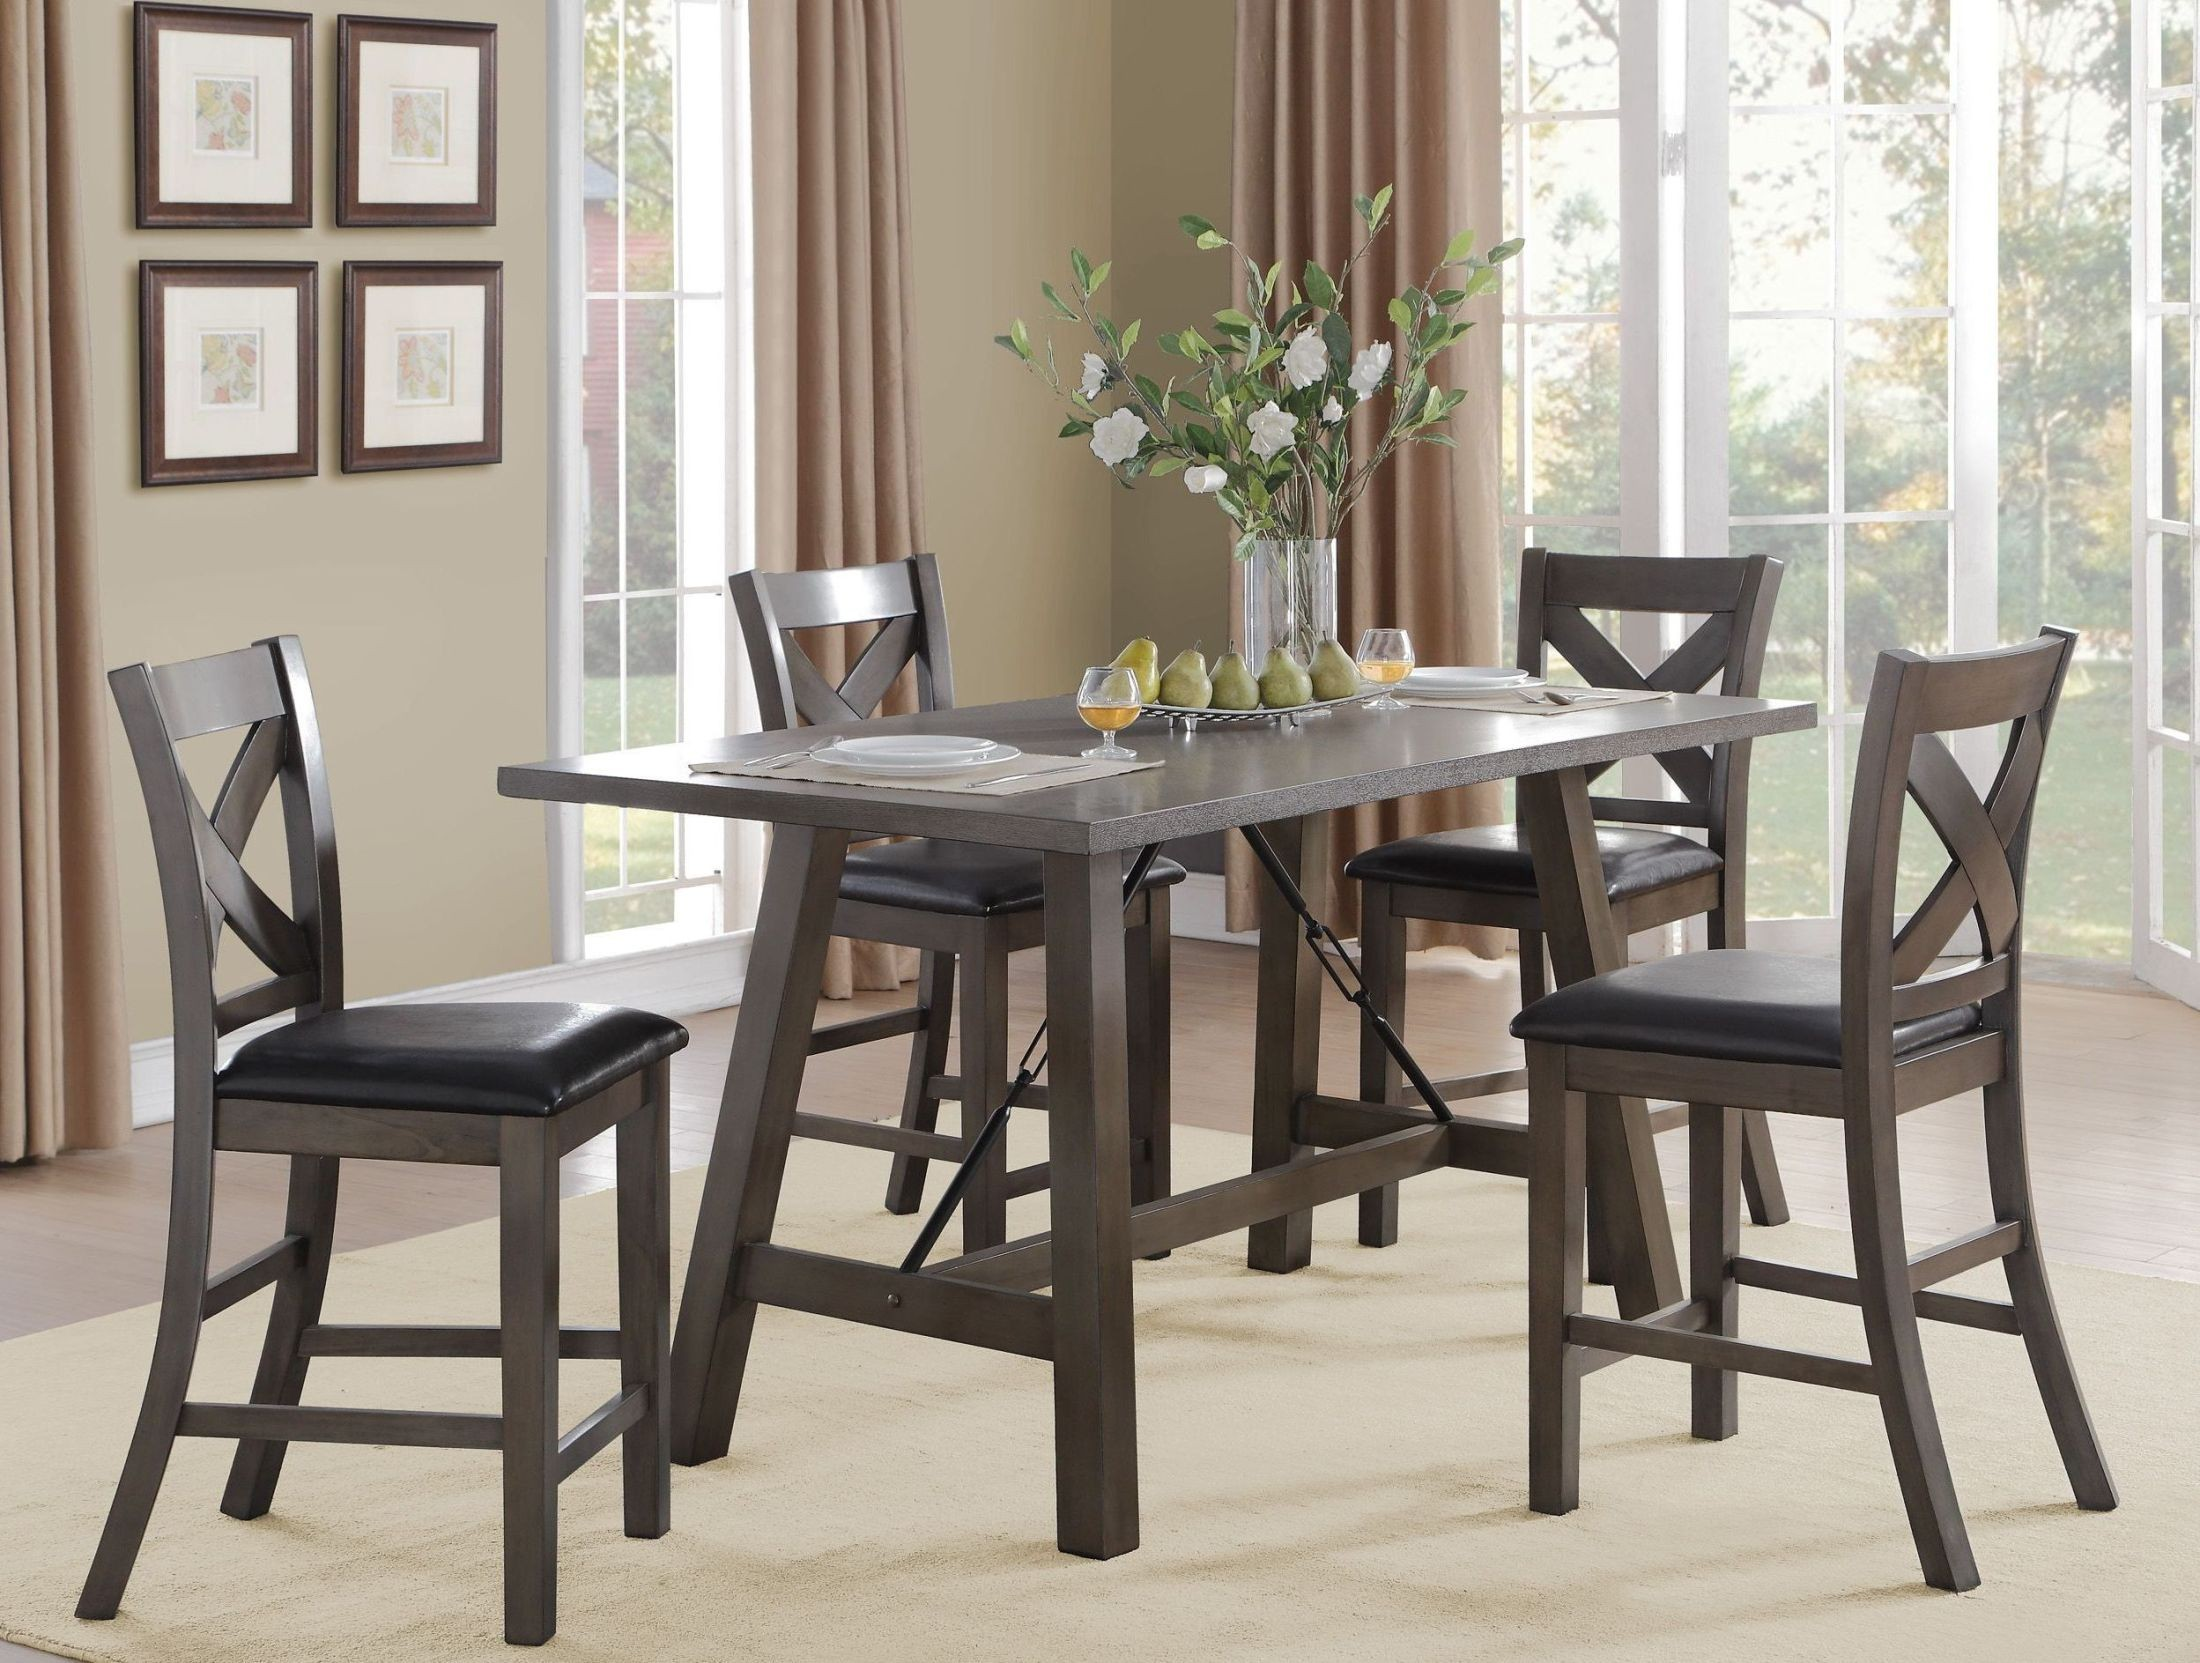 Seaford Black Counter Height Dining Room Set from